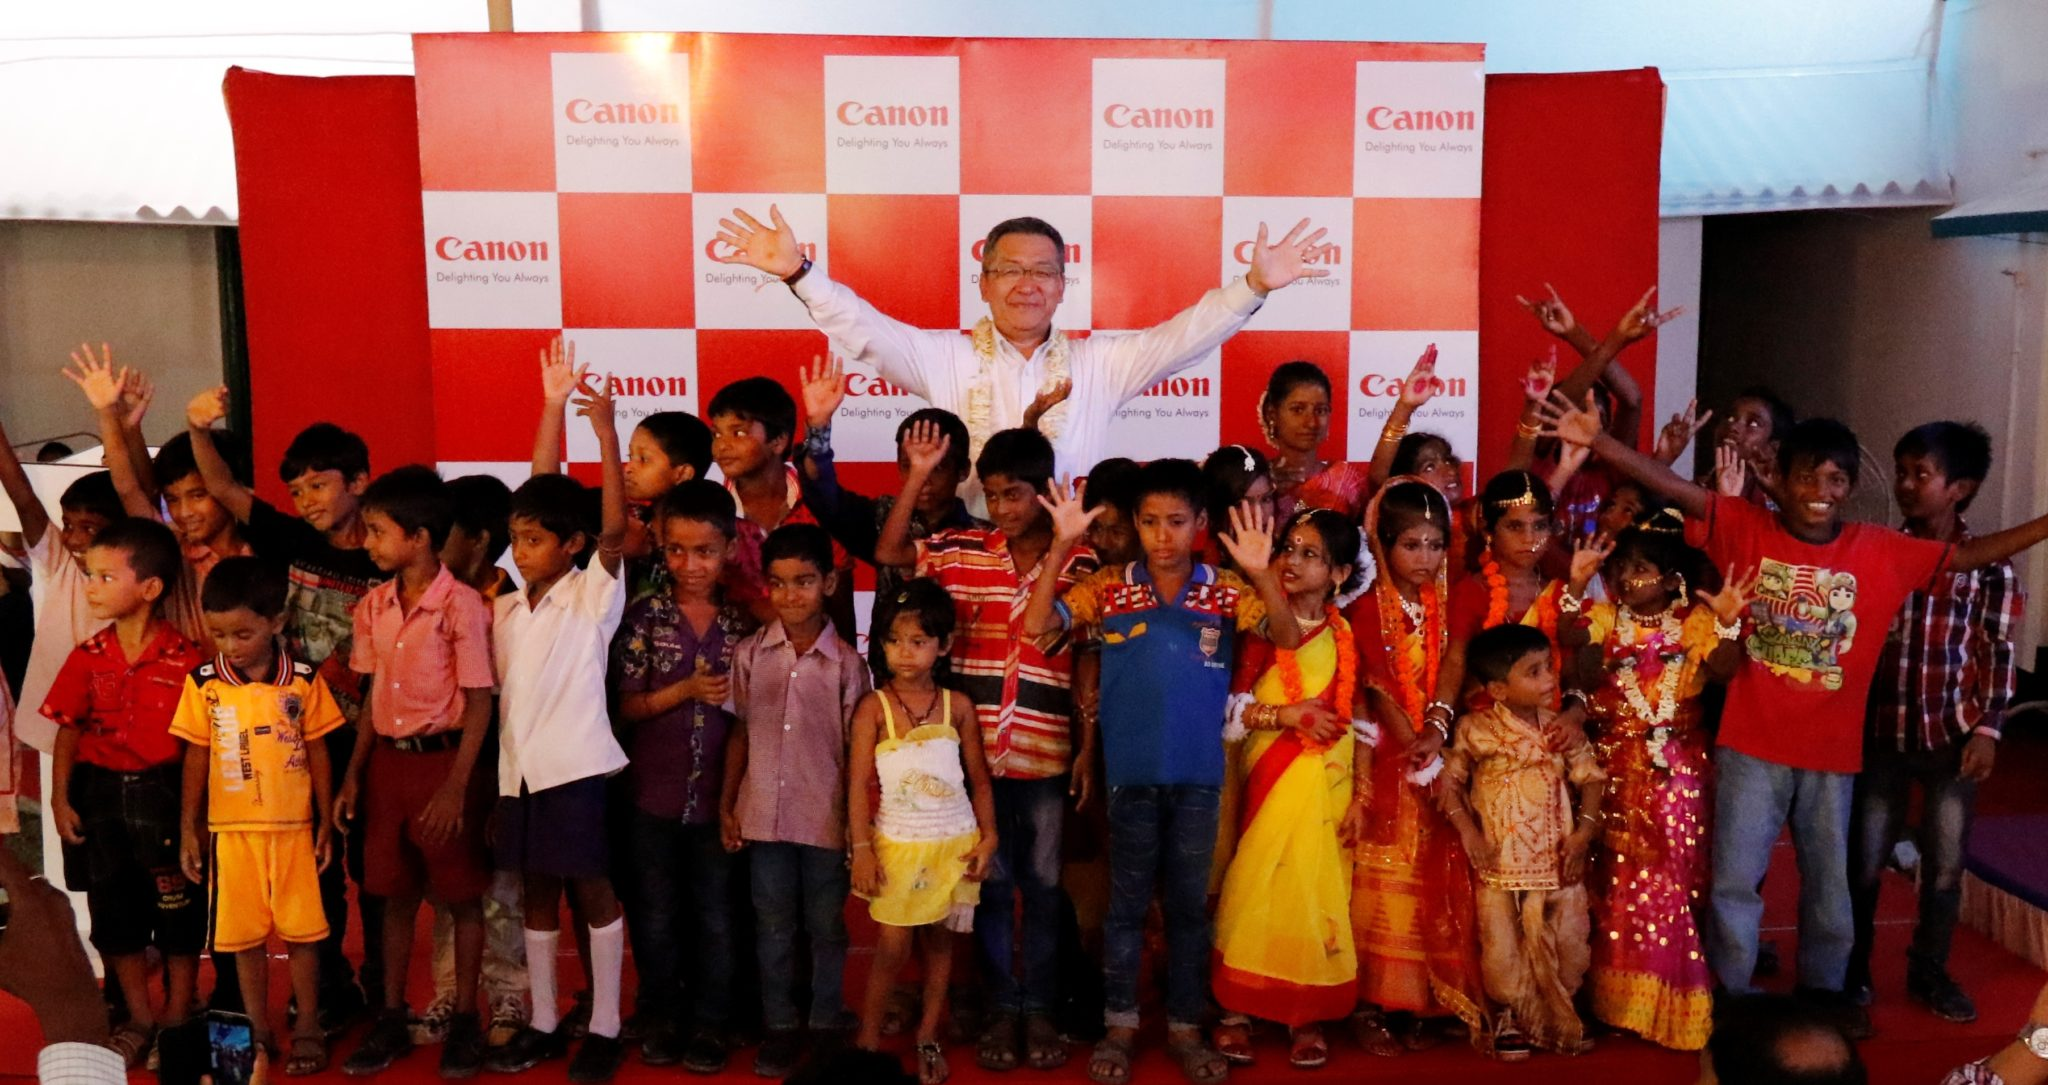 Mr. Kazutada Kobayashi  President & CEO  Canon India brings smiles to young faces at the first anniversary celebratio_